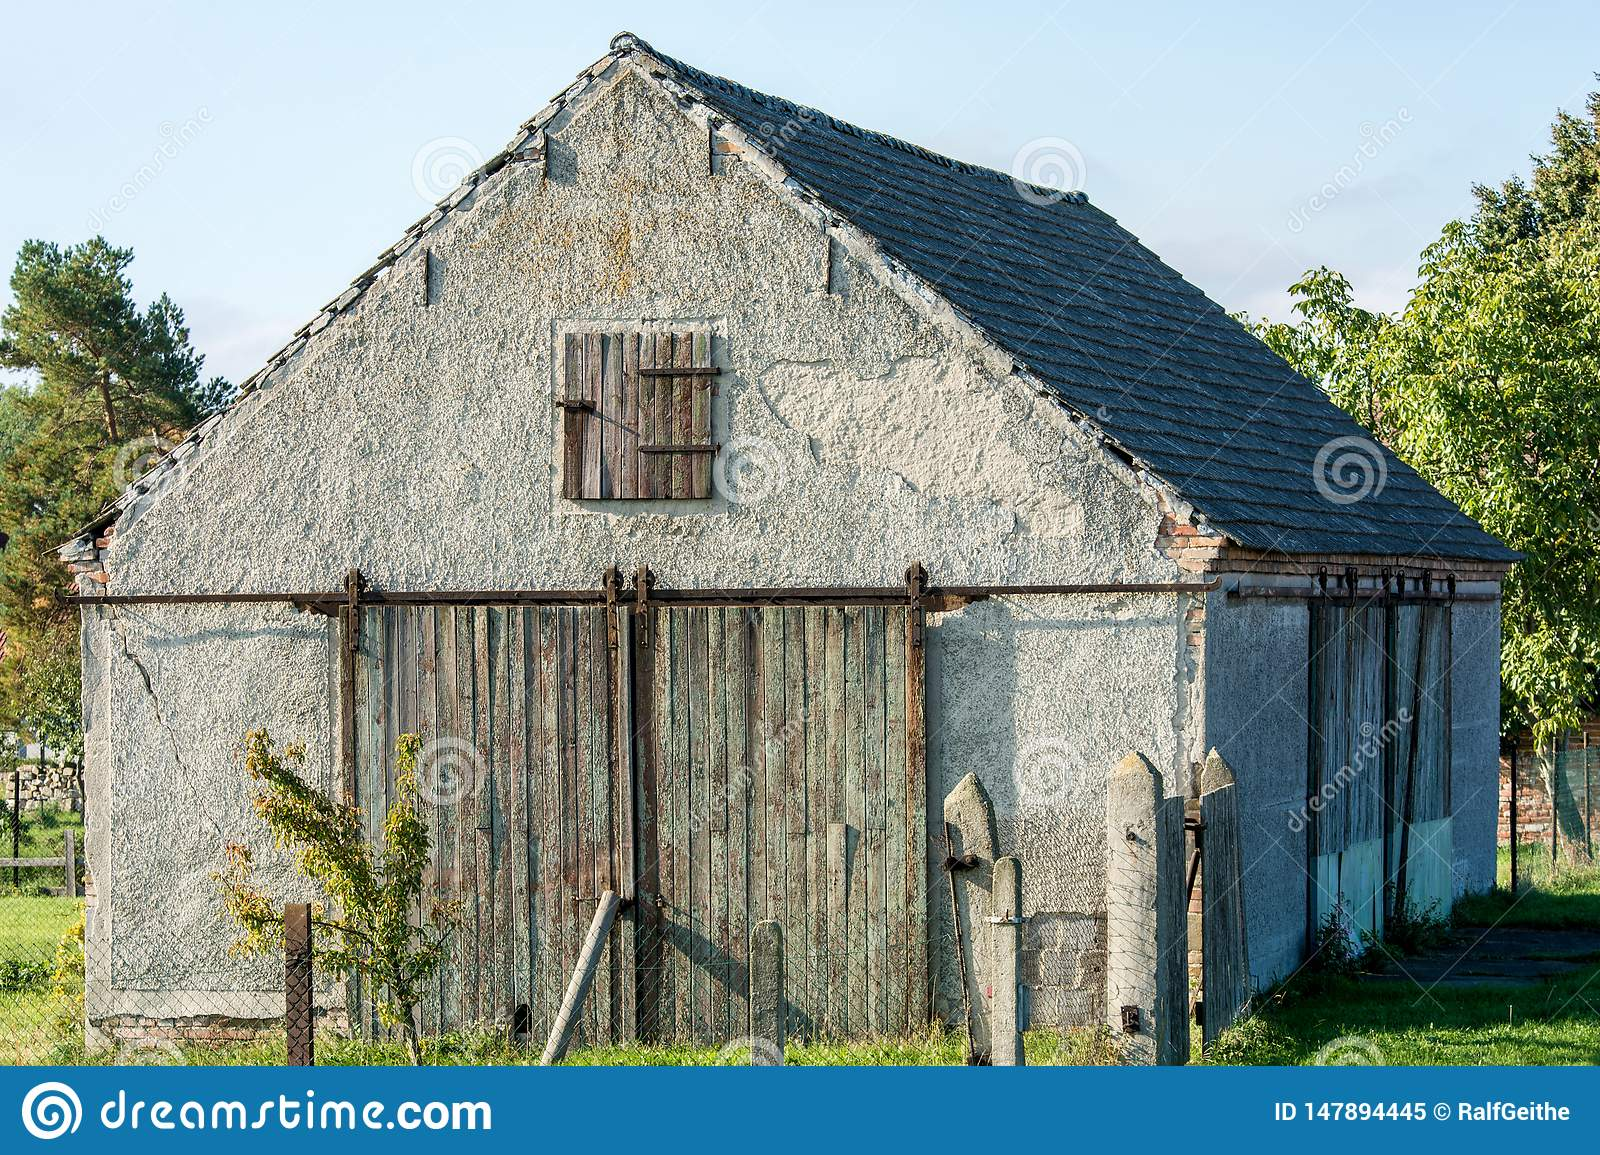 Wooden rolling door as a barn door on an old shed